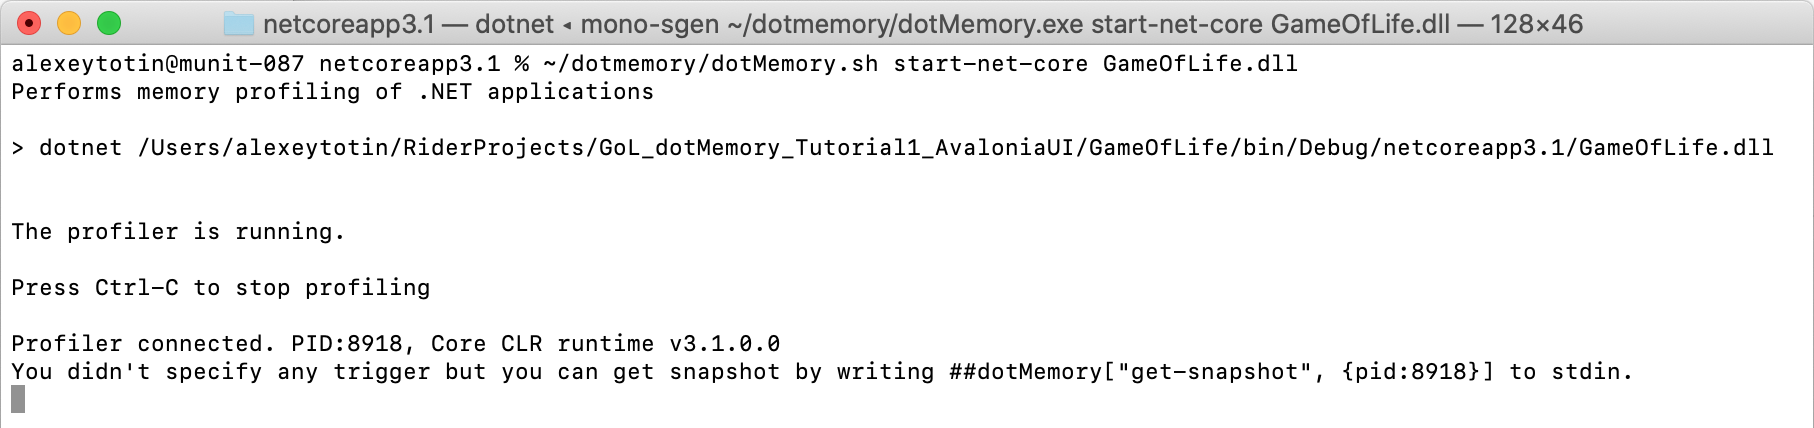 Running dotMemory on macOS